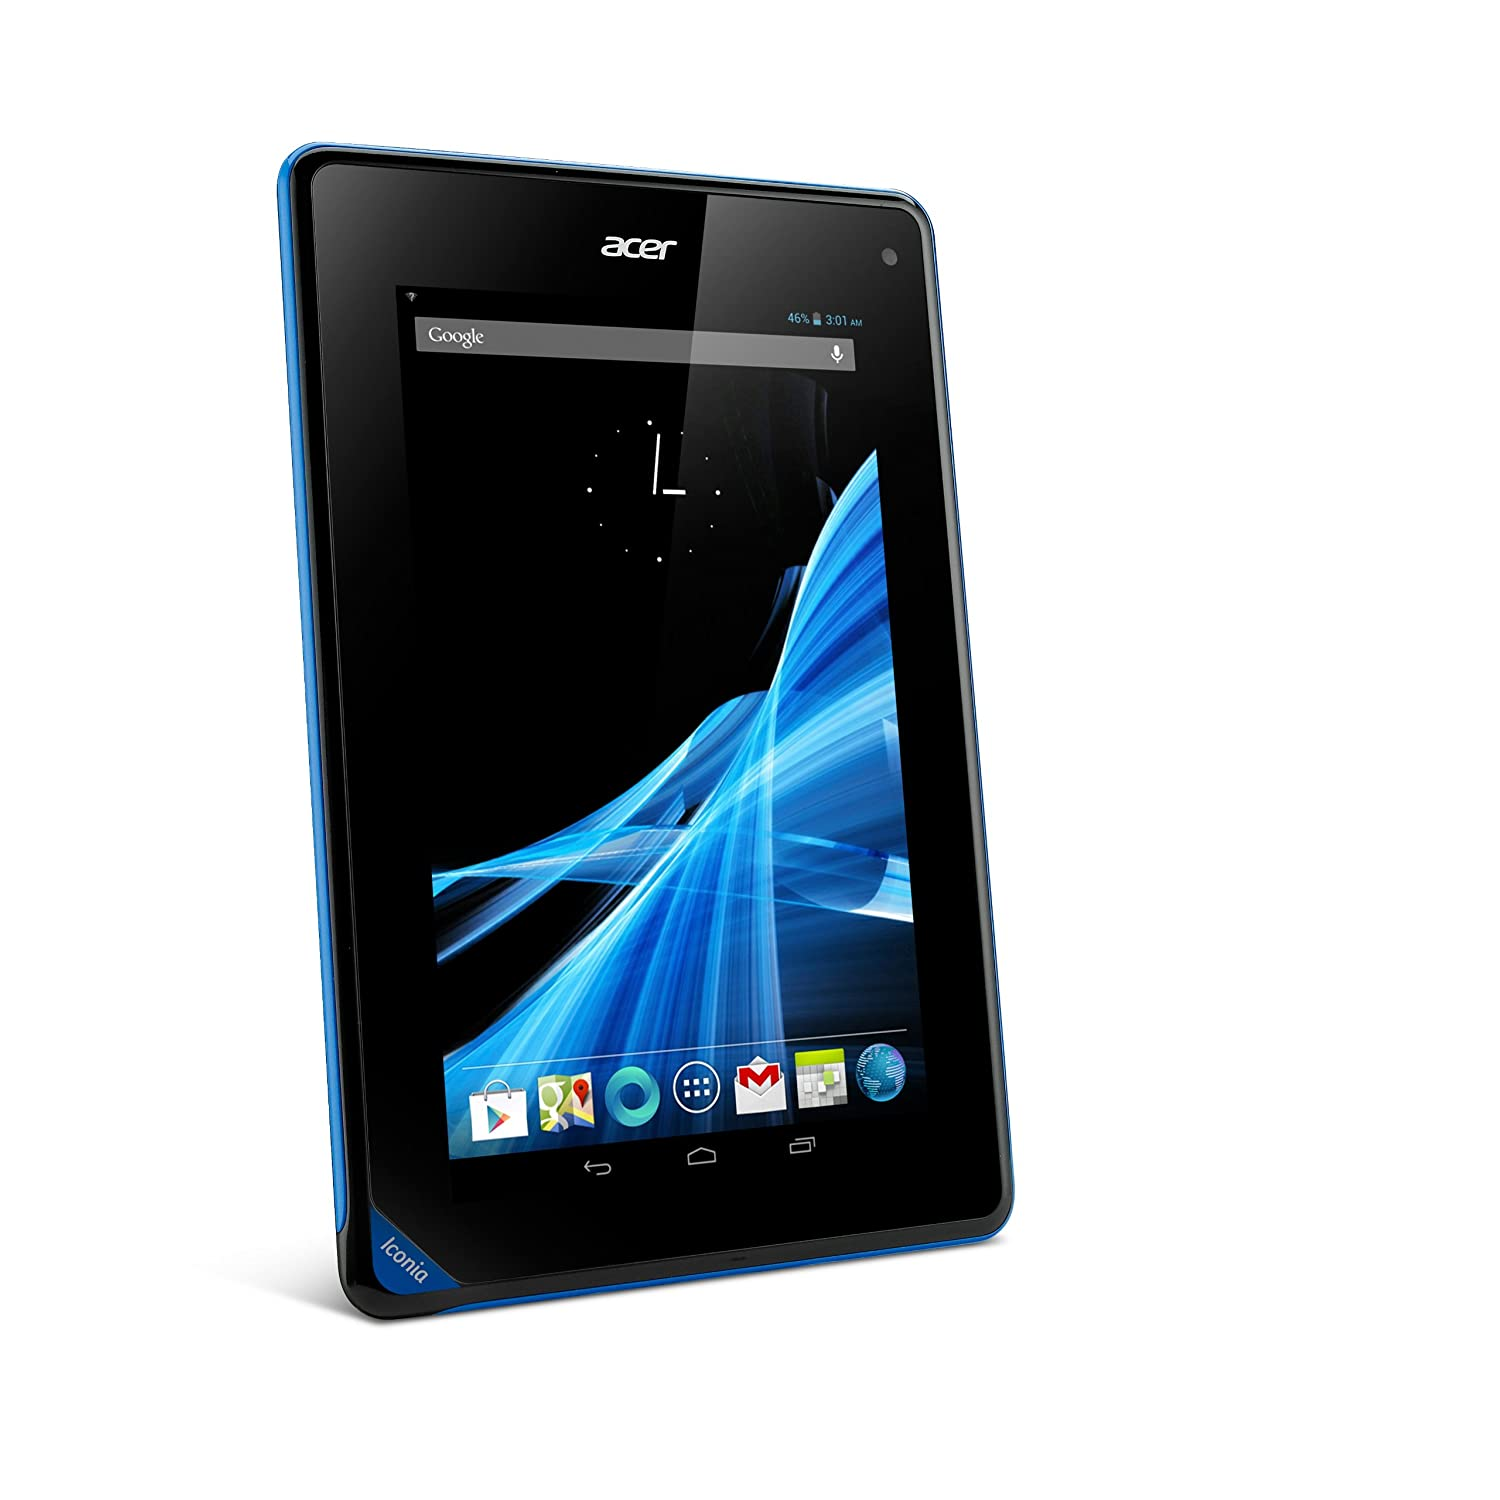 Acer Iconia B1